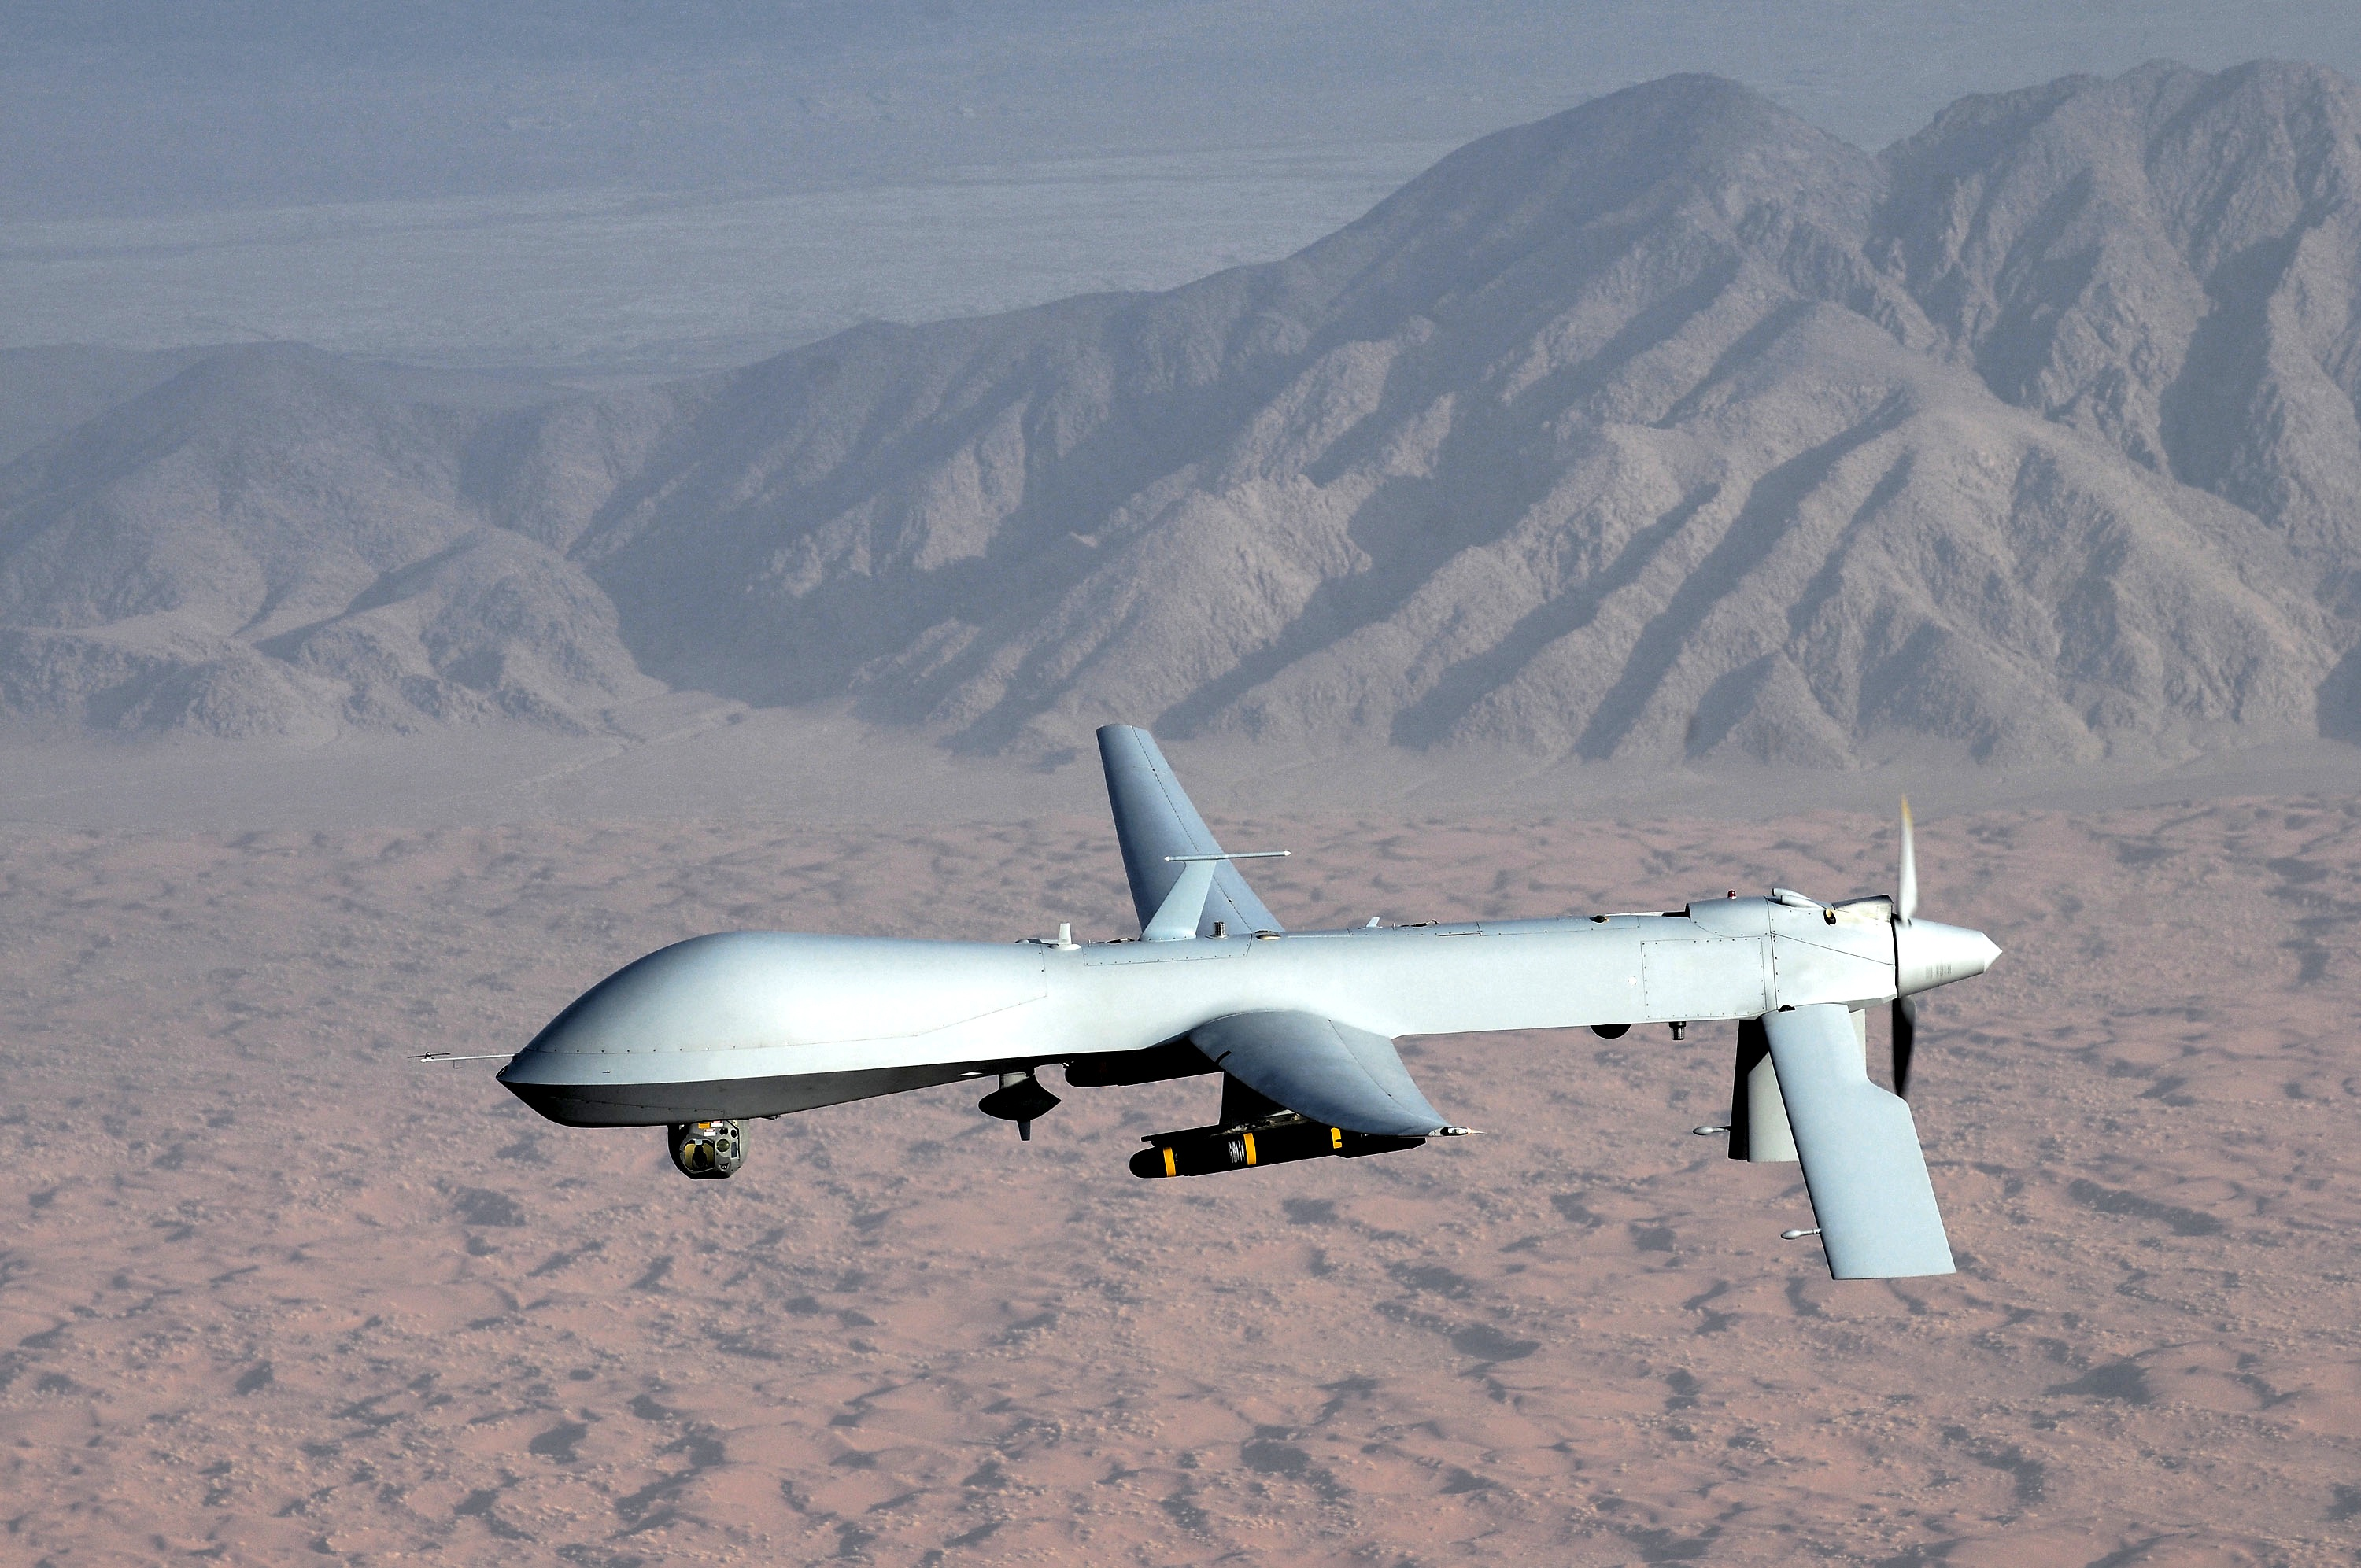 http://upload.wikimedia.org/wikipedia/commons/0/08/MQ-1_Predator_unmanned_aircraft.jpg